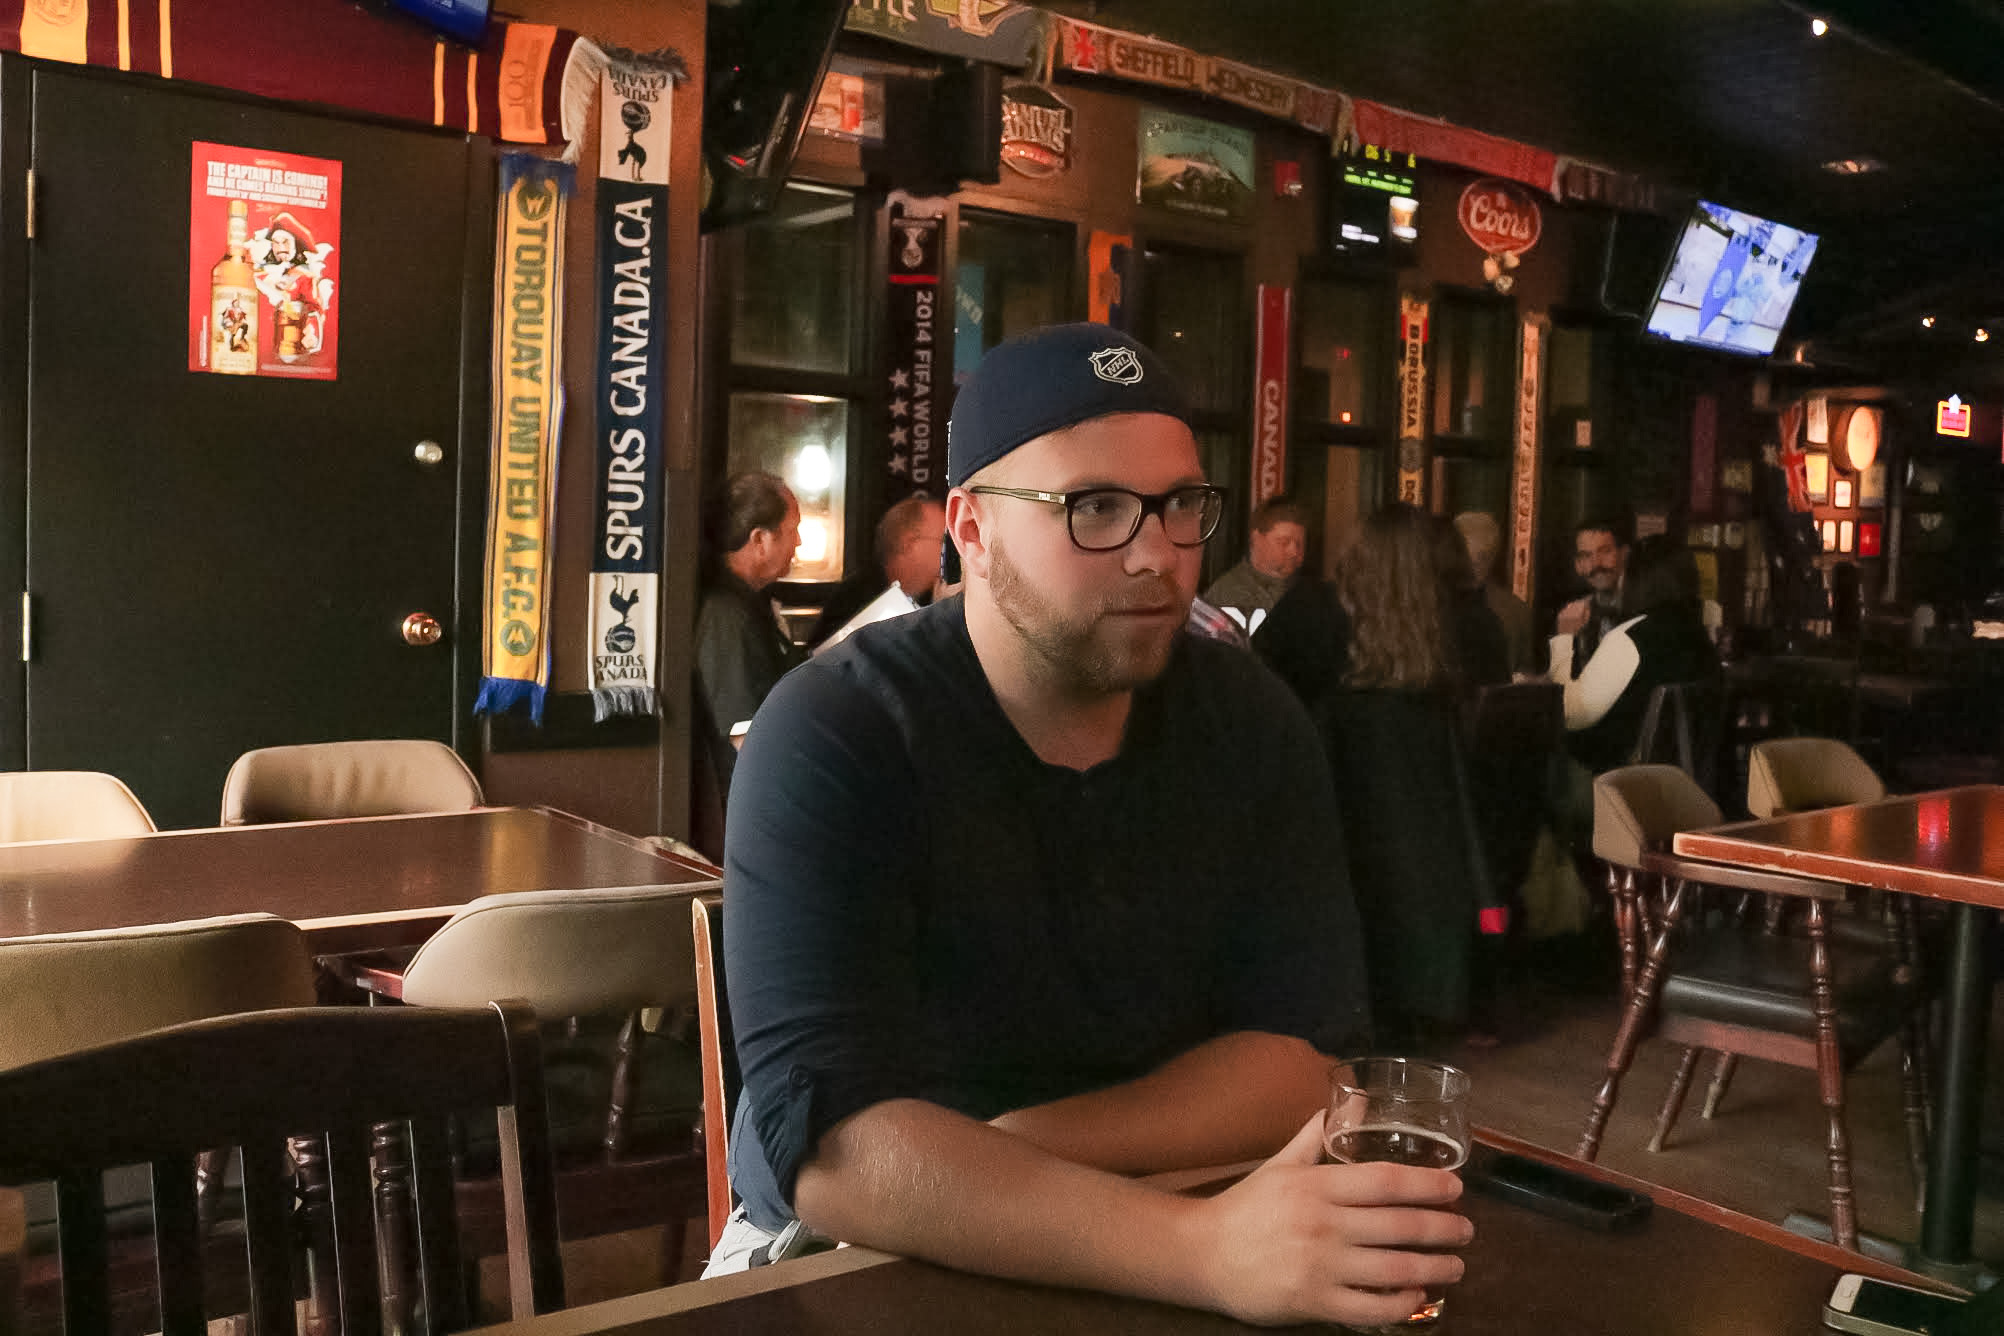 At the Kings Head Pub, Jordan Welwood discusses his upcoming performance at SiriusXM's Top Comic. THE PROJECTOR/Taylor Isham